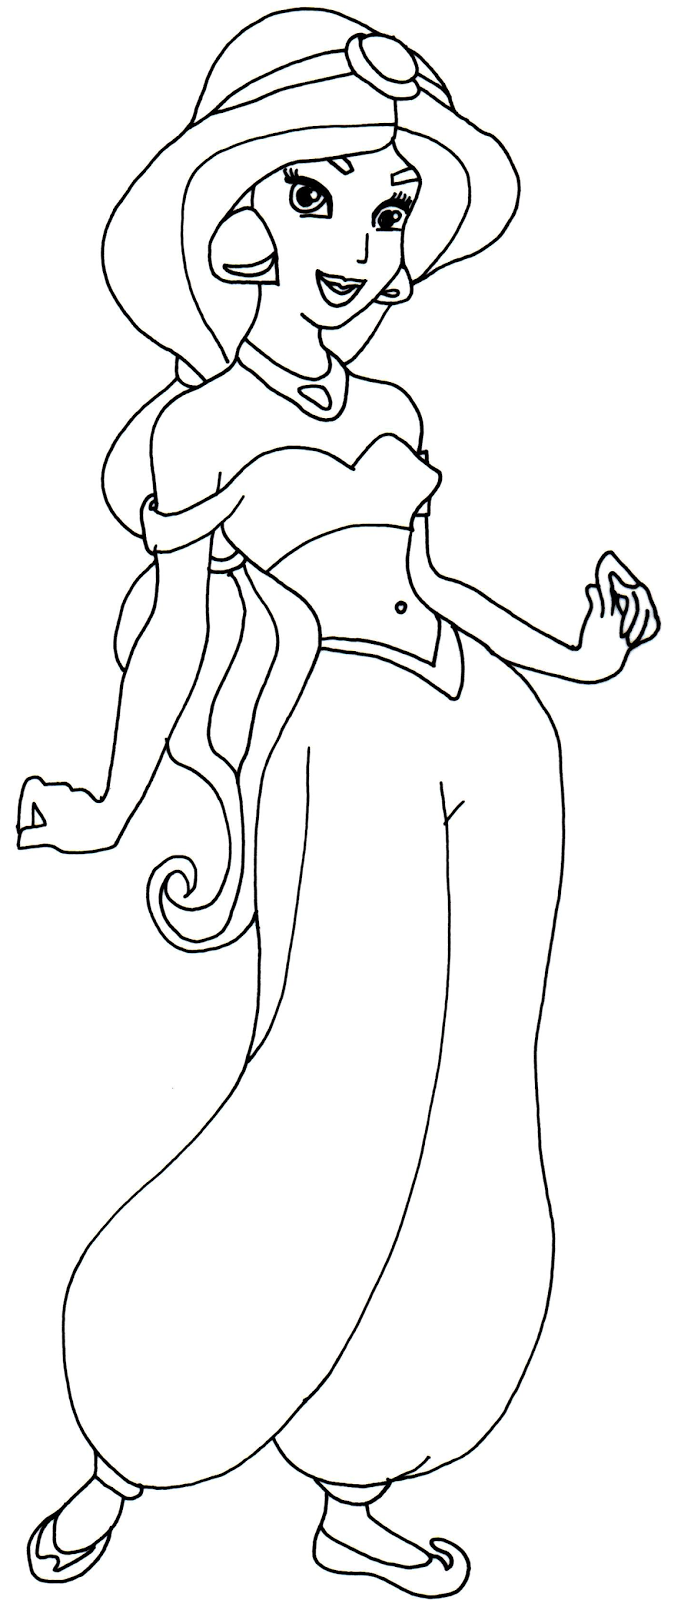 jasmine the princess coloring pages sofia the first coloring pages march 2014